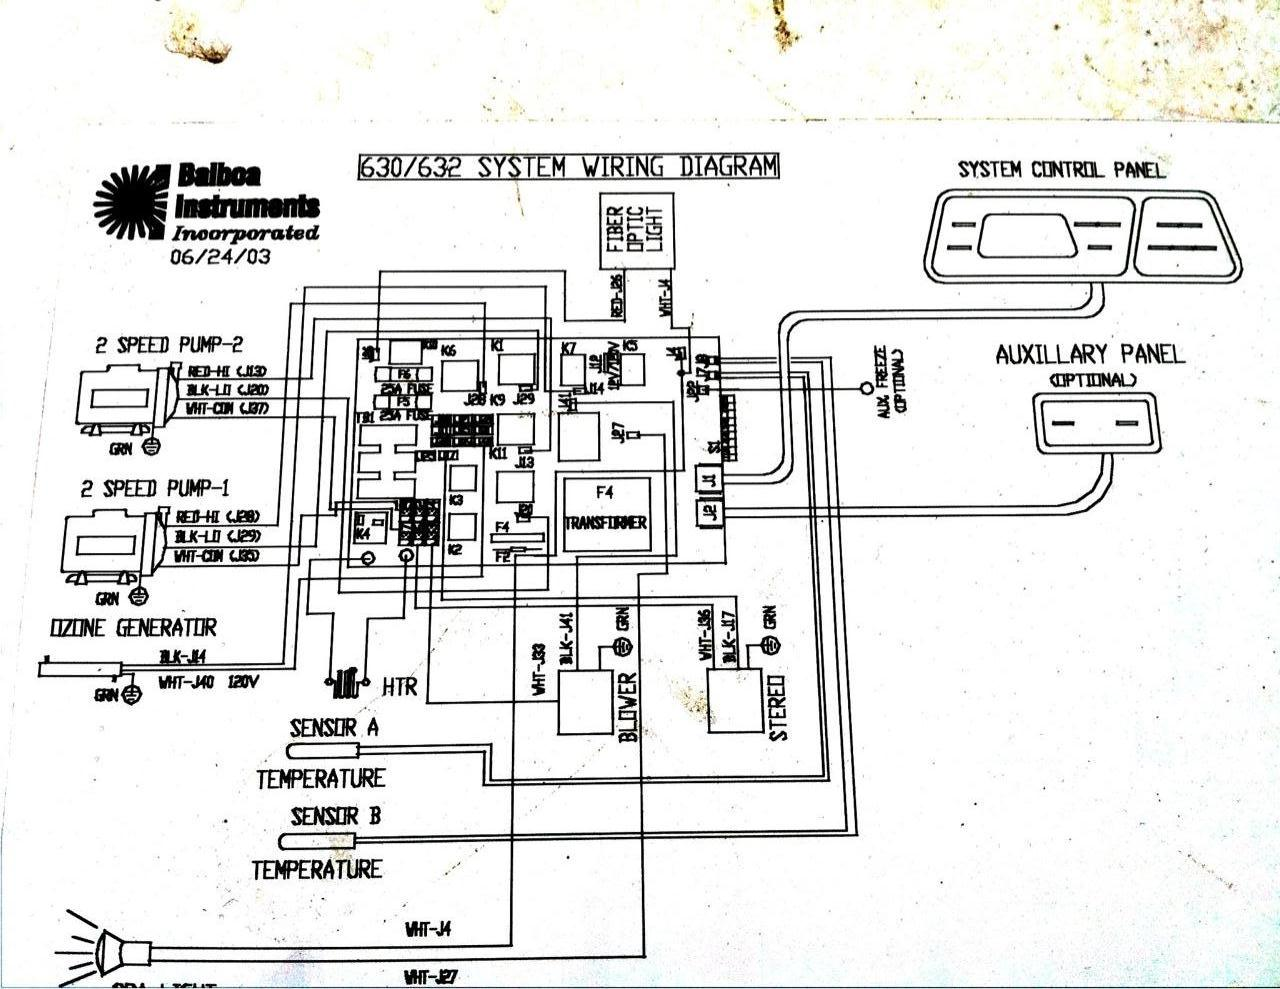 2010 10 20_150219_Doc 10_20_10_7_51 page 1 coleman spa wiring diagram gandul 45 77 79 119  at creativeand.co